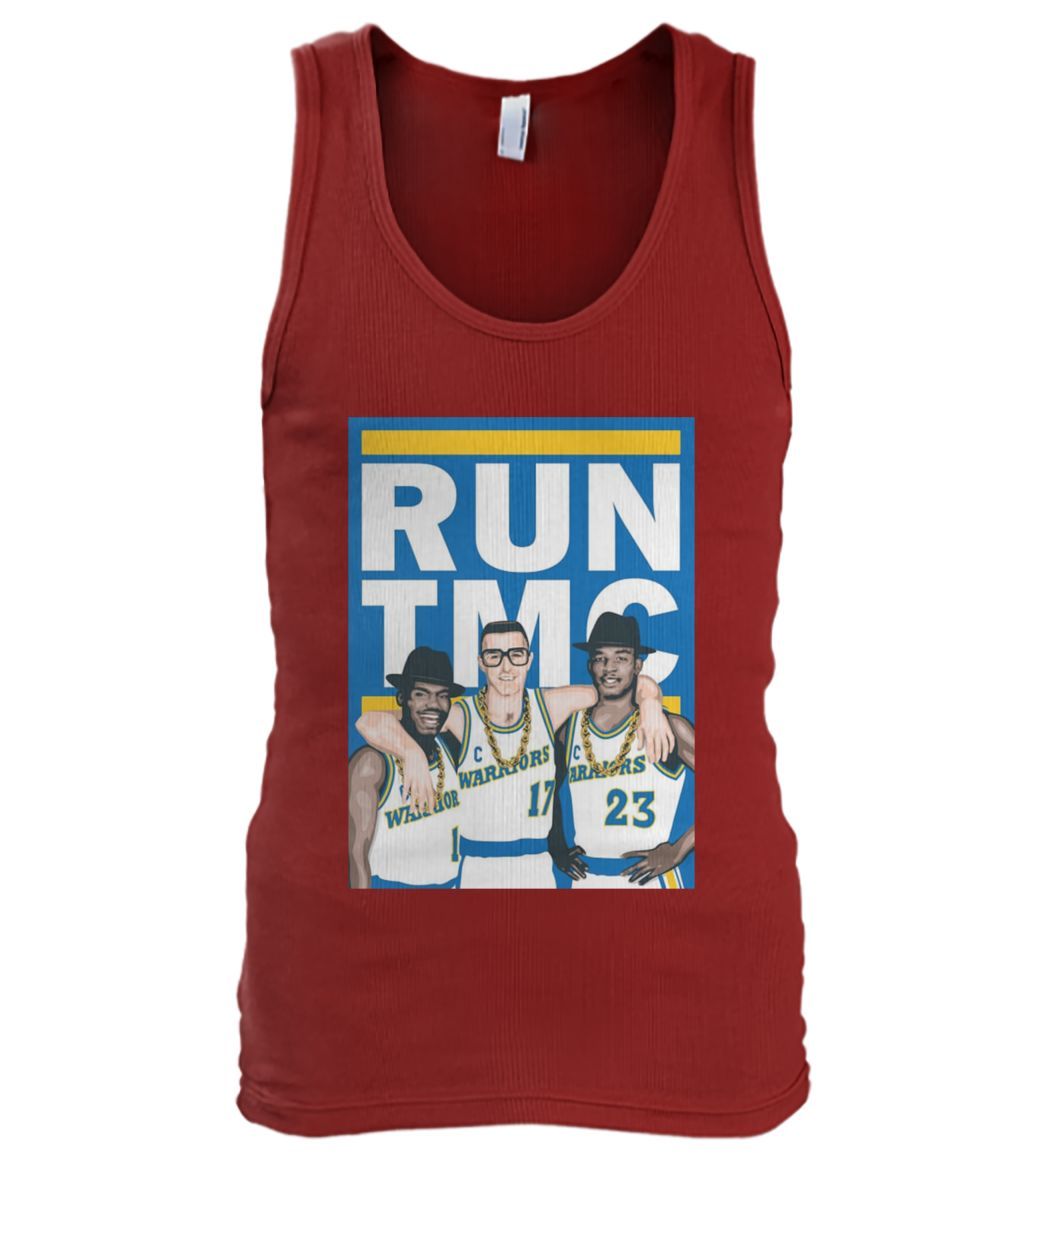 Golden state warriors RUN TMC men's tank top